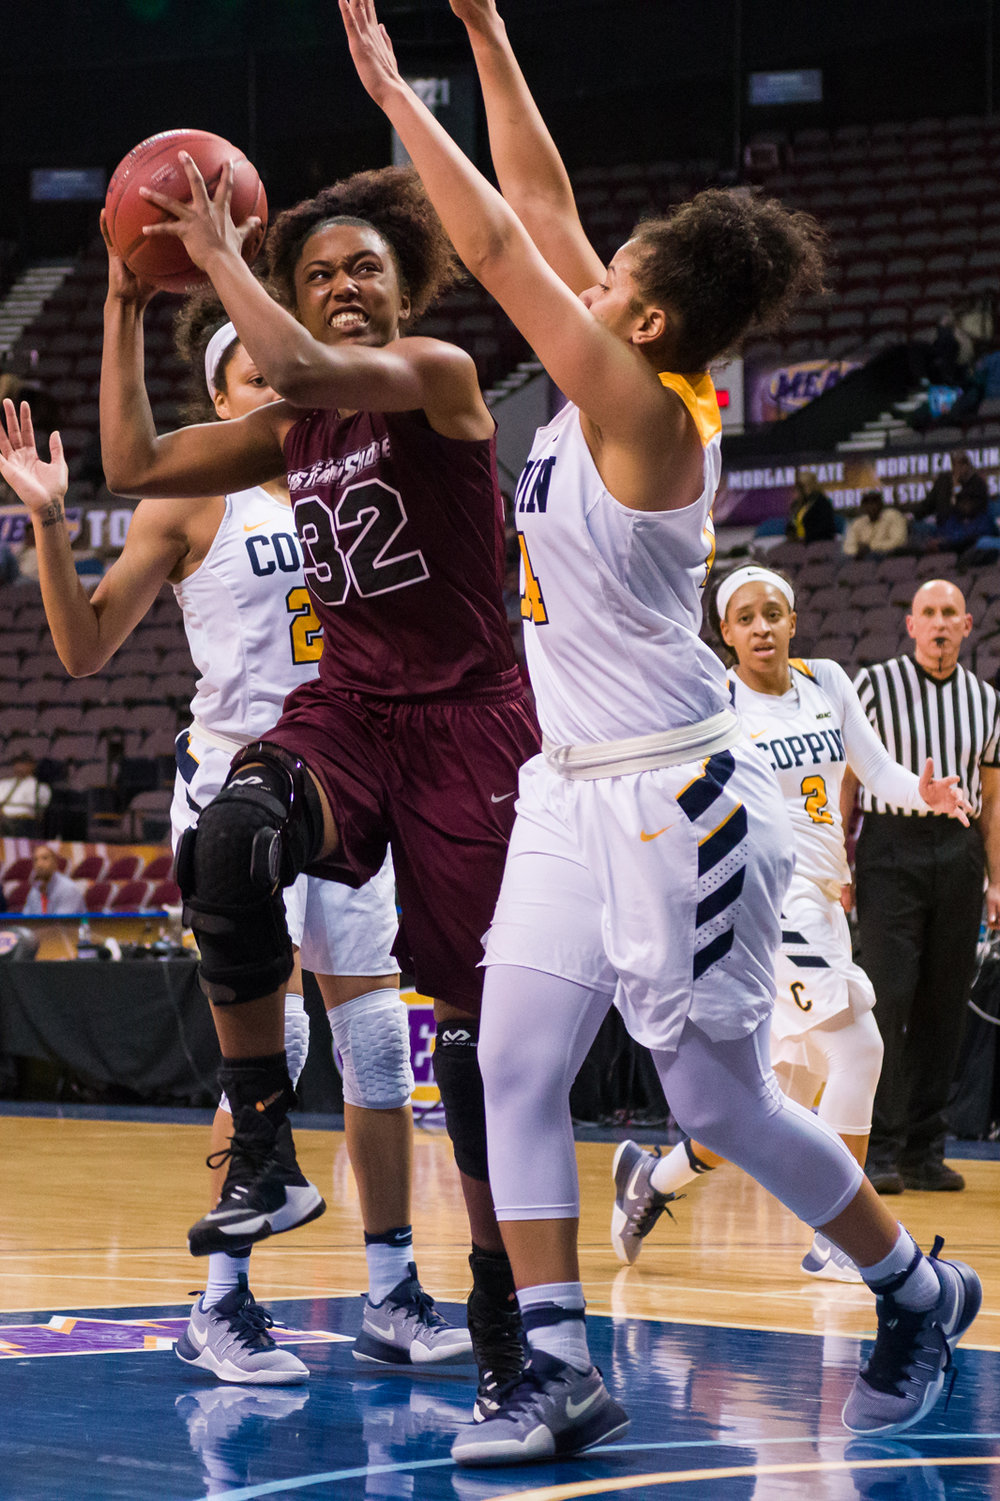 Maryland Eastern Shore Lady Hawks guard Keyera Eaton (32) goes up for a shot against Coppin State Lady Eagles forward Tiara Goode (14) during the 2017 MEAC Tournament held at the Scope Arena in Norfolk, VA. Maryland Eastern Shore defeated Coppin State 62-59.